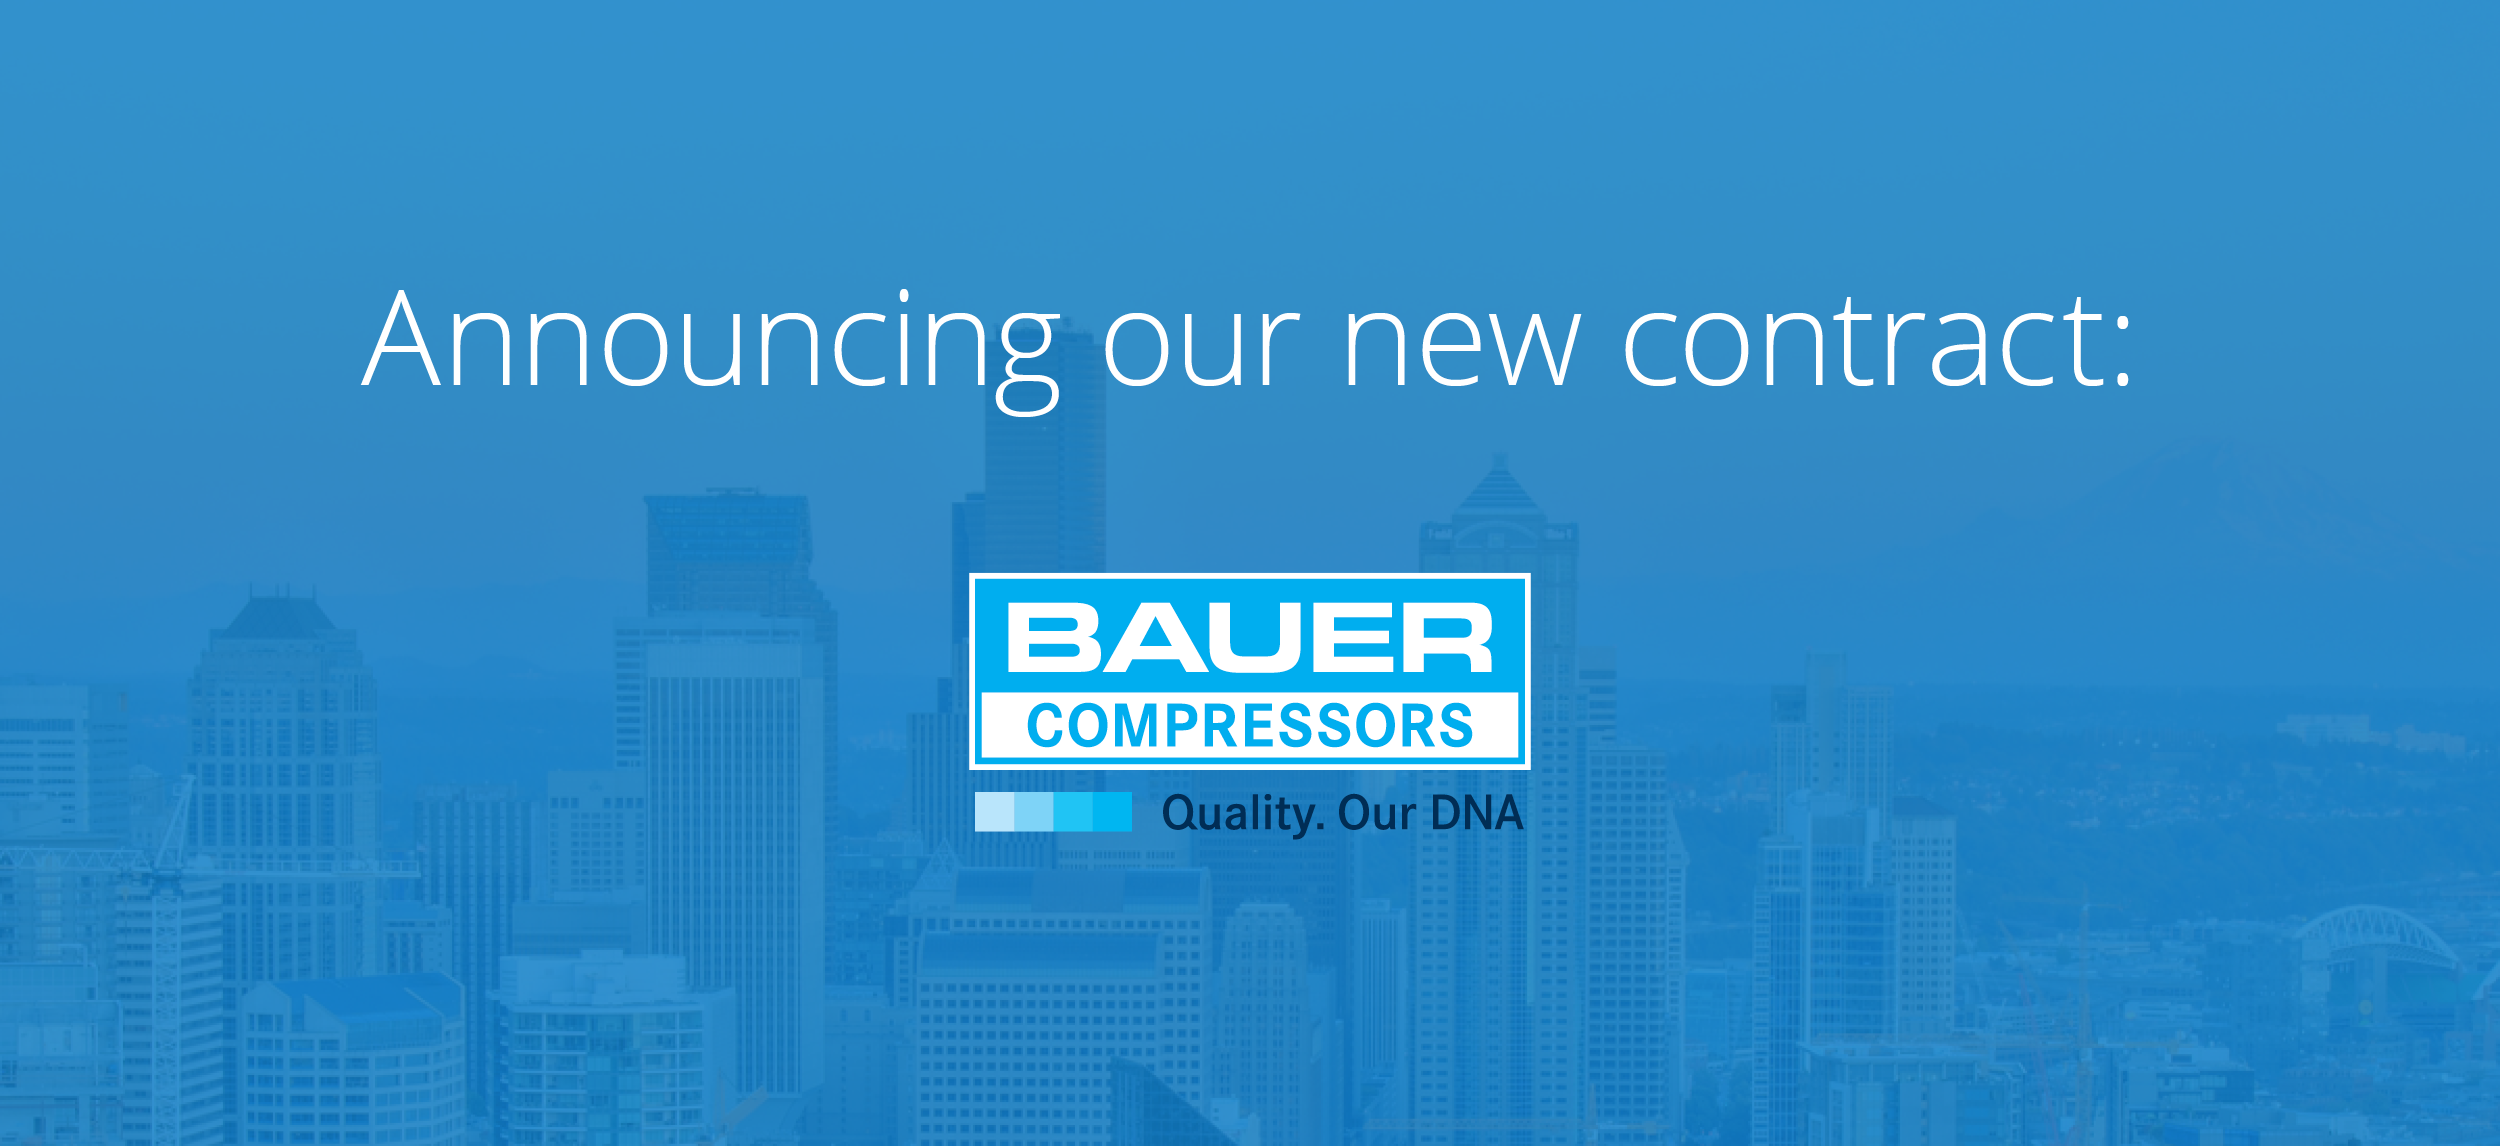 Bauer Compressors, Inc: Our Newest Contract